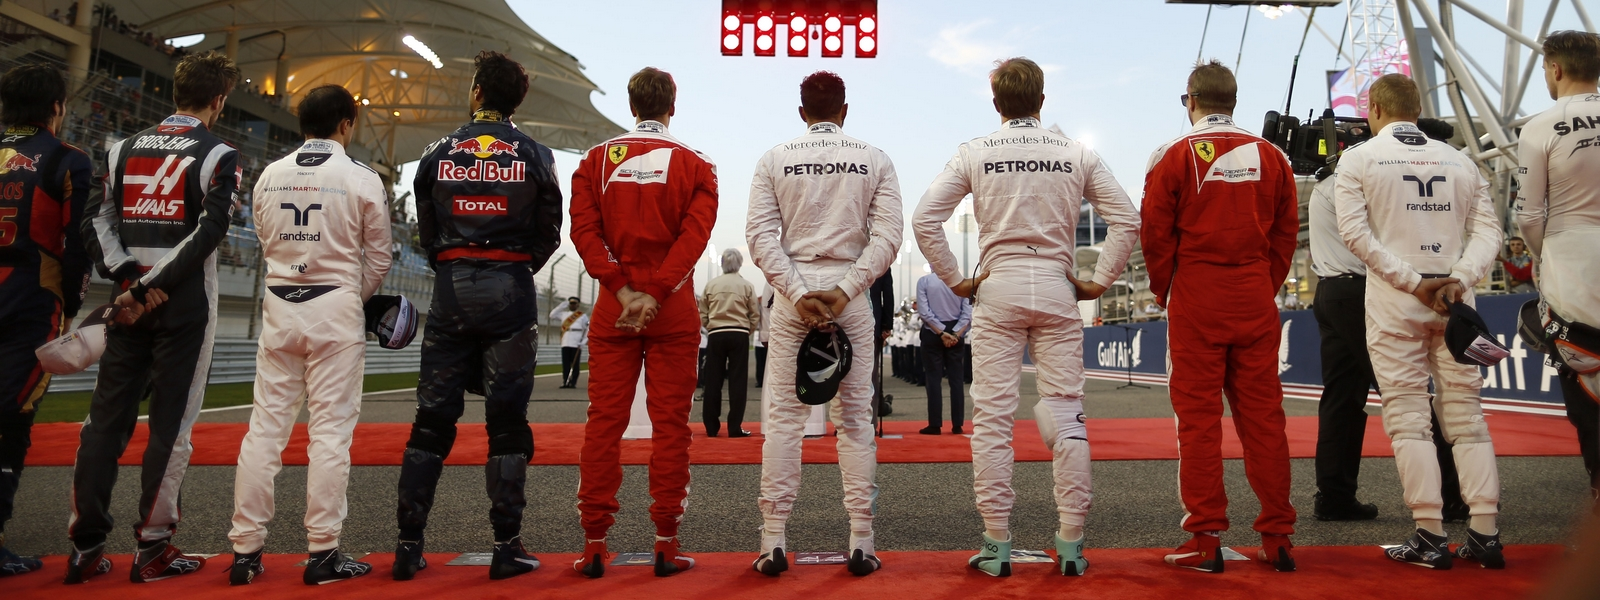 Motorsports: FIA Formula One World Championship 2016, Grand Prix of Bahrain,  F1 drivers during national anthem *** Local Caption *** +++ www.hoch-zwei.net +++ copyright: HOCH ZWEI +++